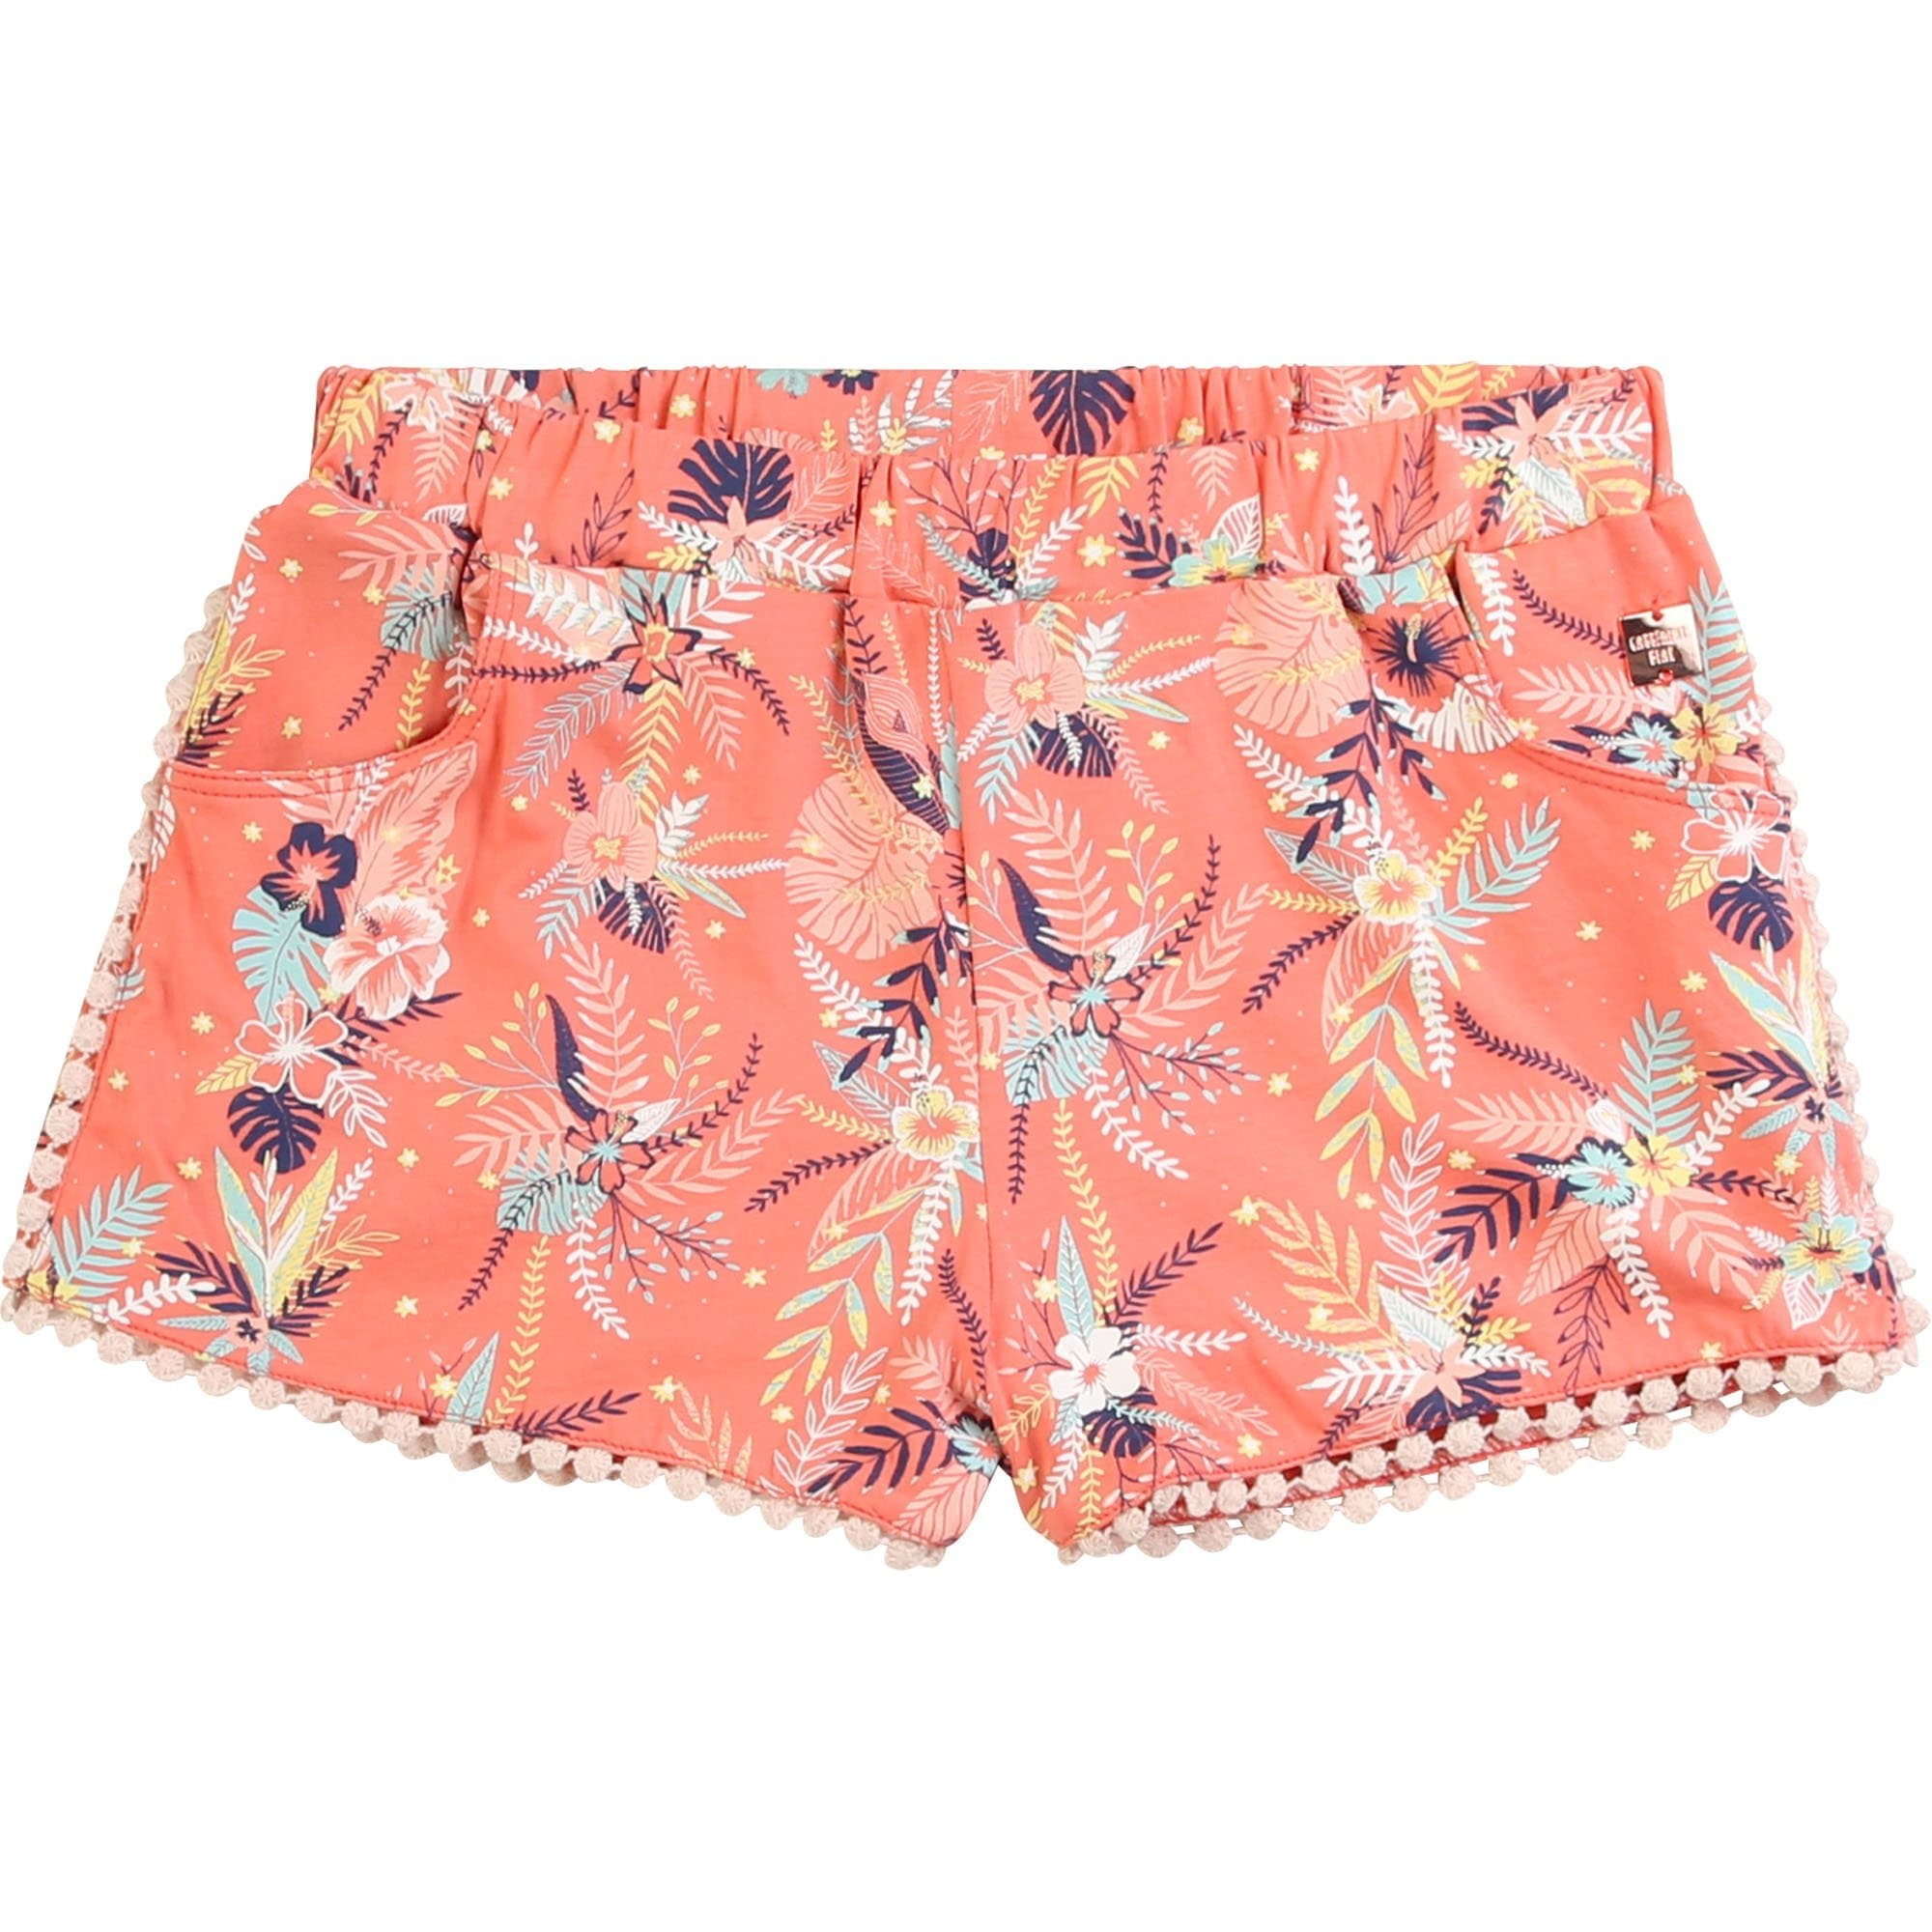 Carrement Beau Apricot Floral Shorts